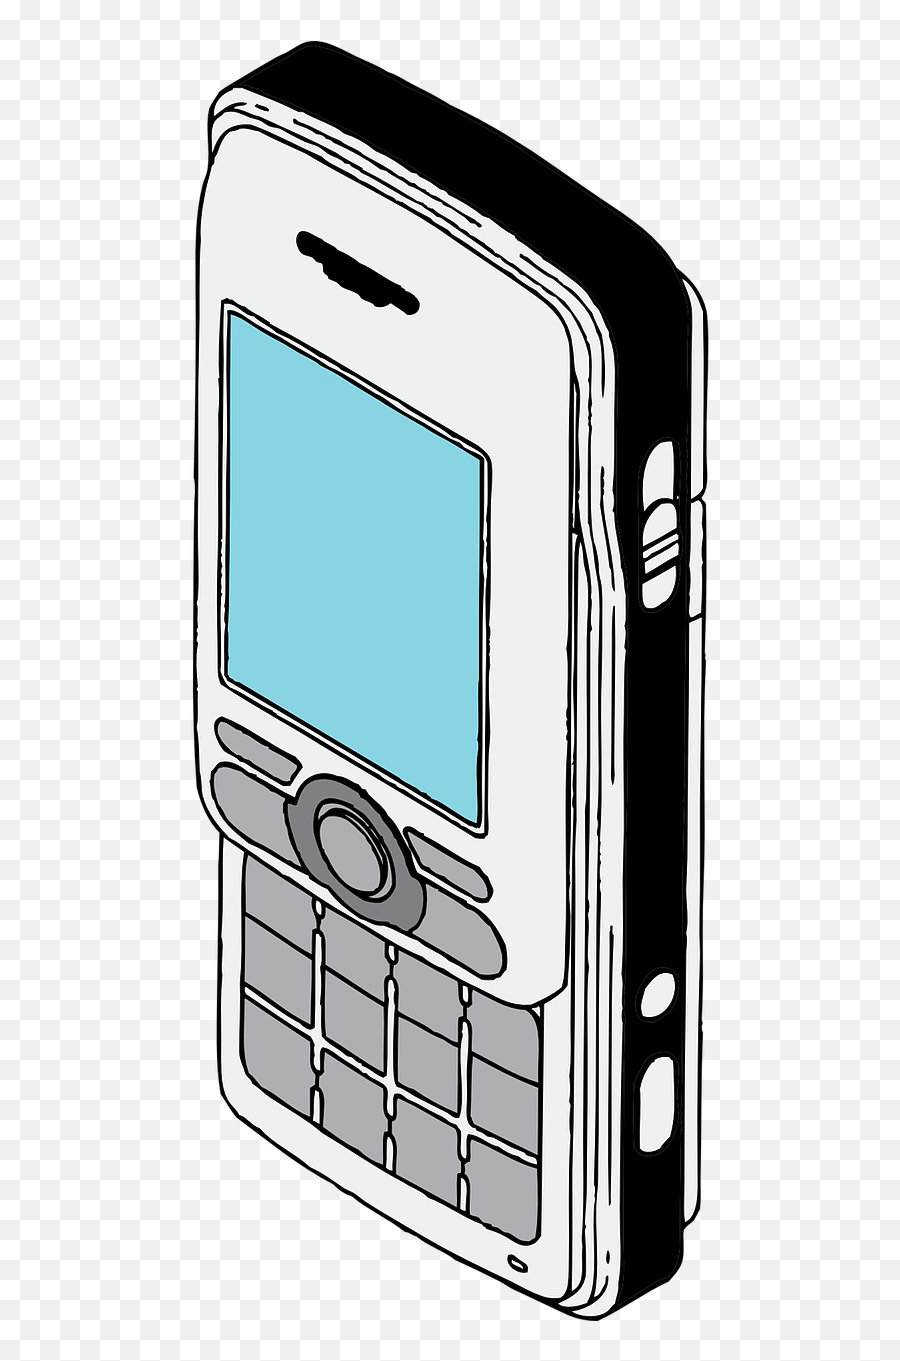 Cellphone Mobile - Cell Phone Retro Drawing Emoji,More Emojis For Iphone 6